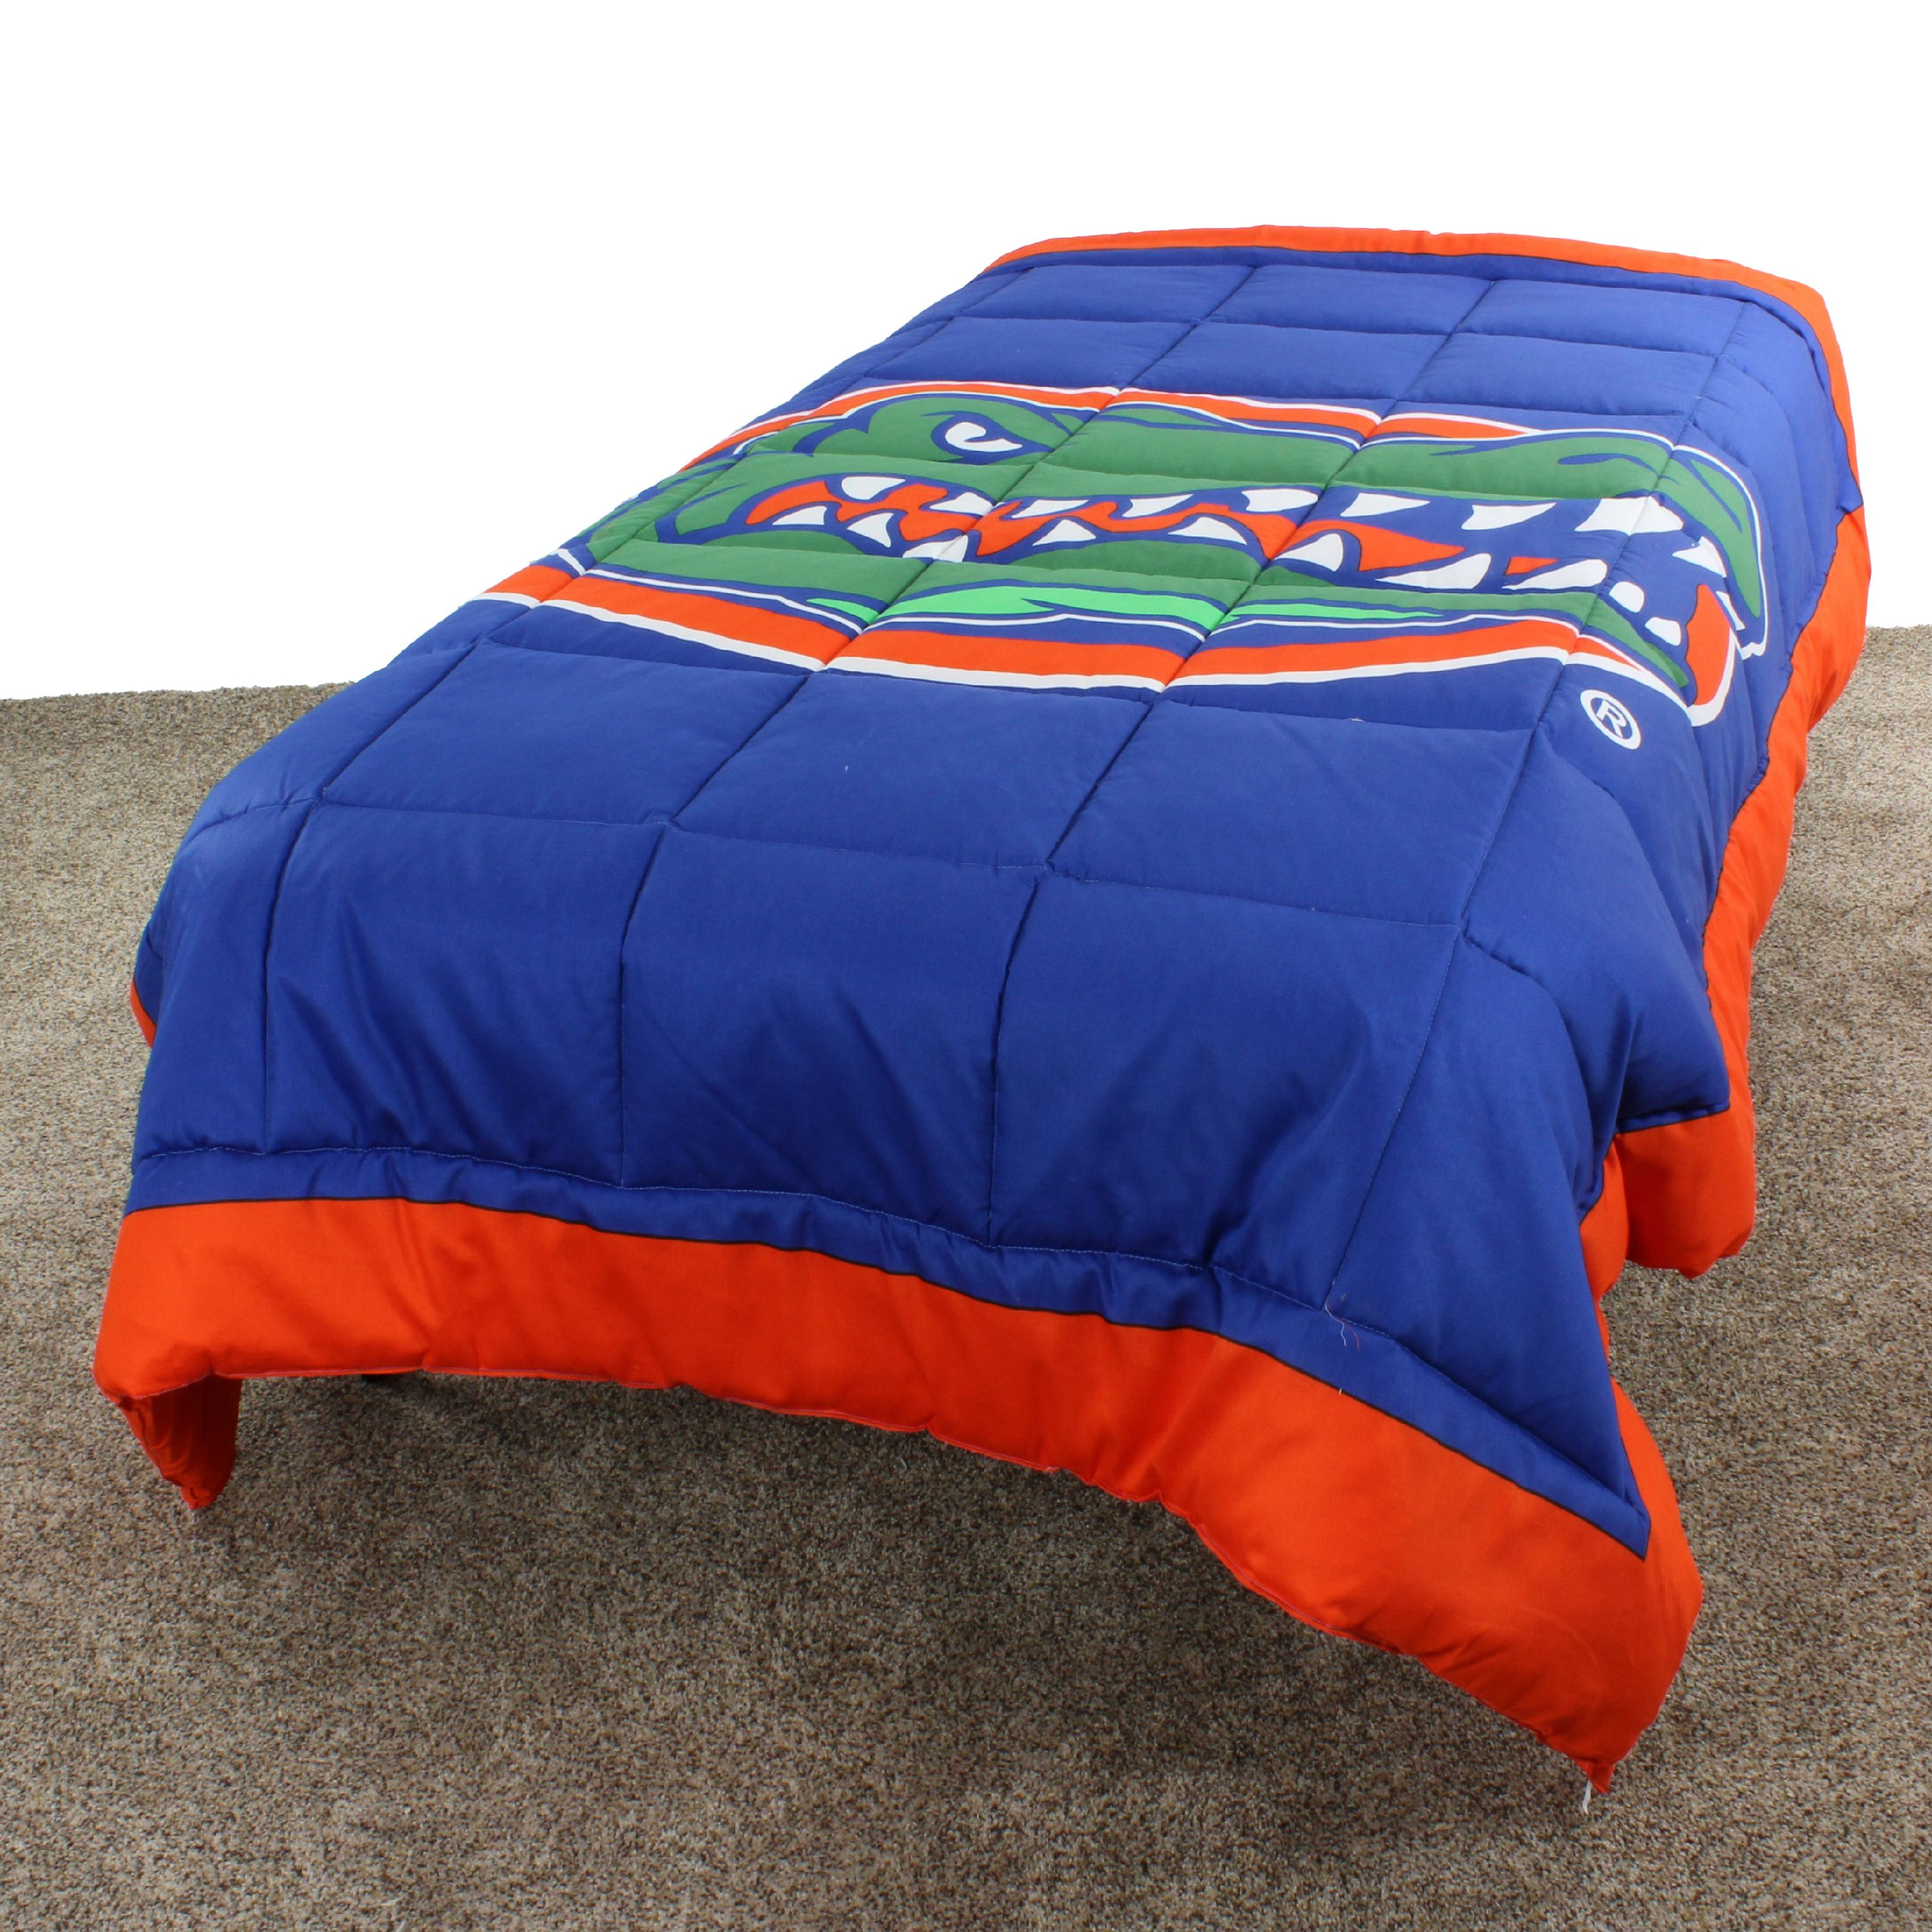 "Florida Gators 2 Sided Reversible Comforter, 100% Cotton Sateen, 80"" x 90"", Full"